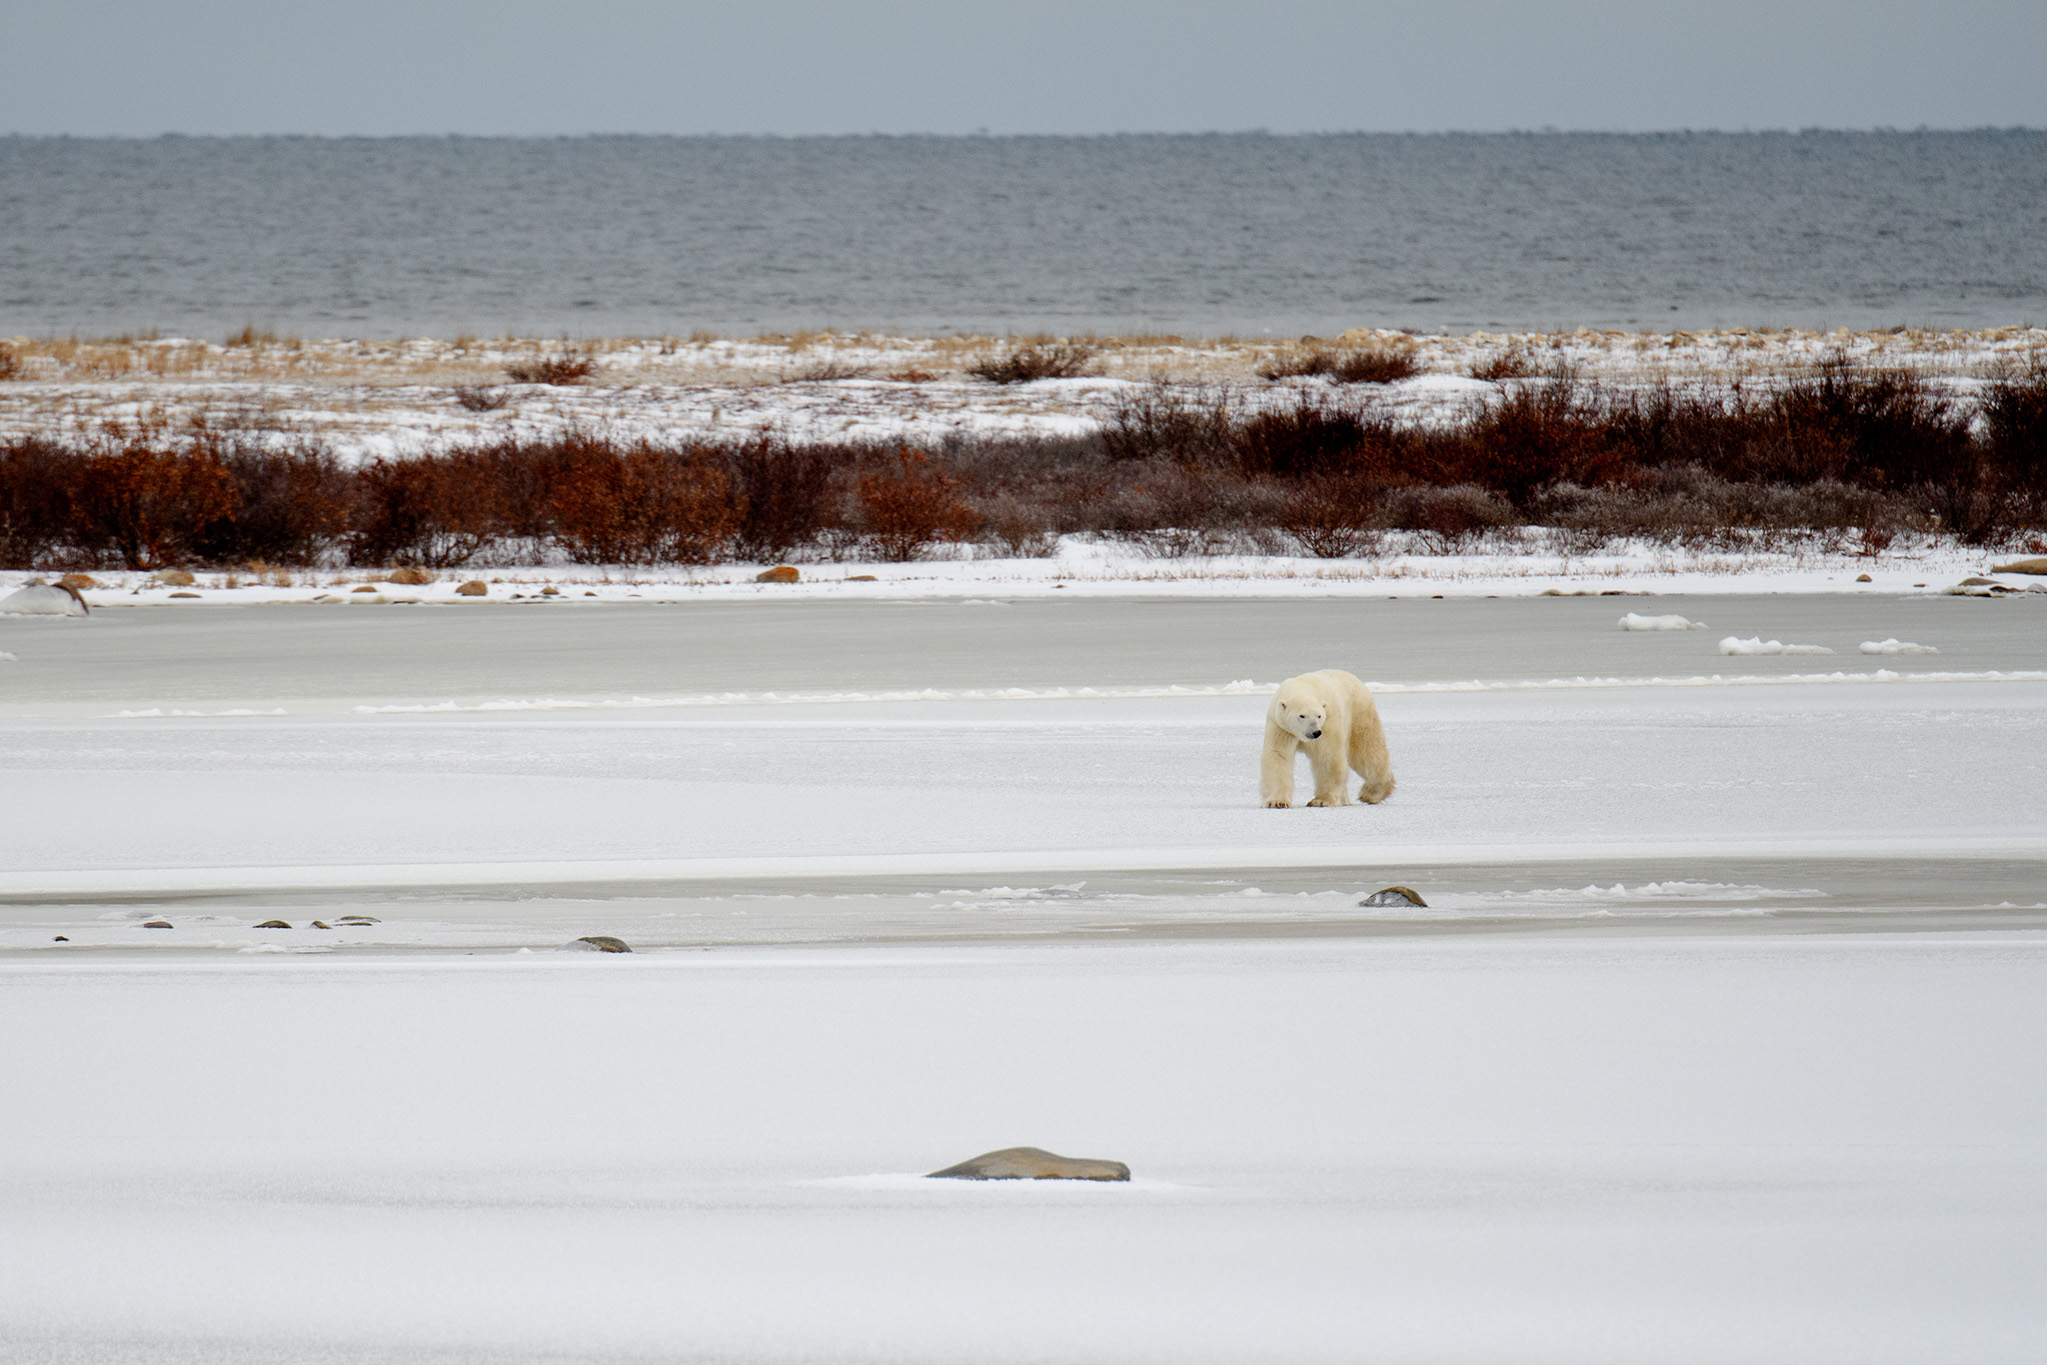 A large male heads across the icy lake.